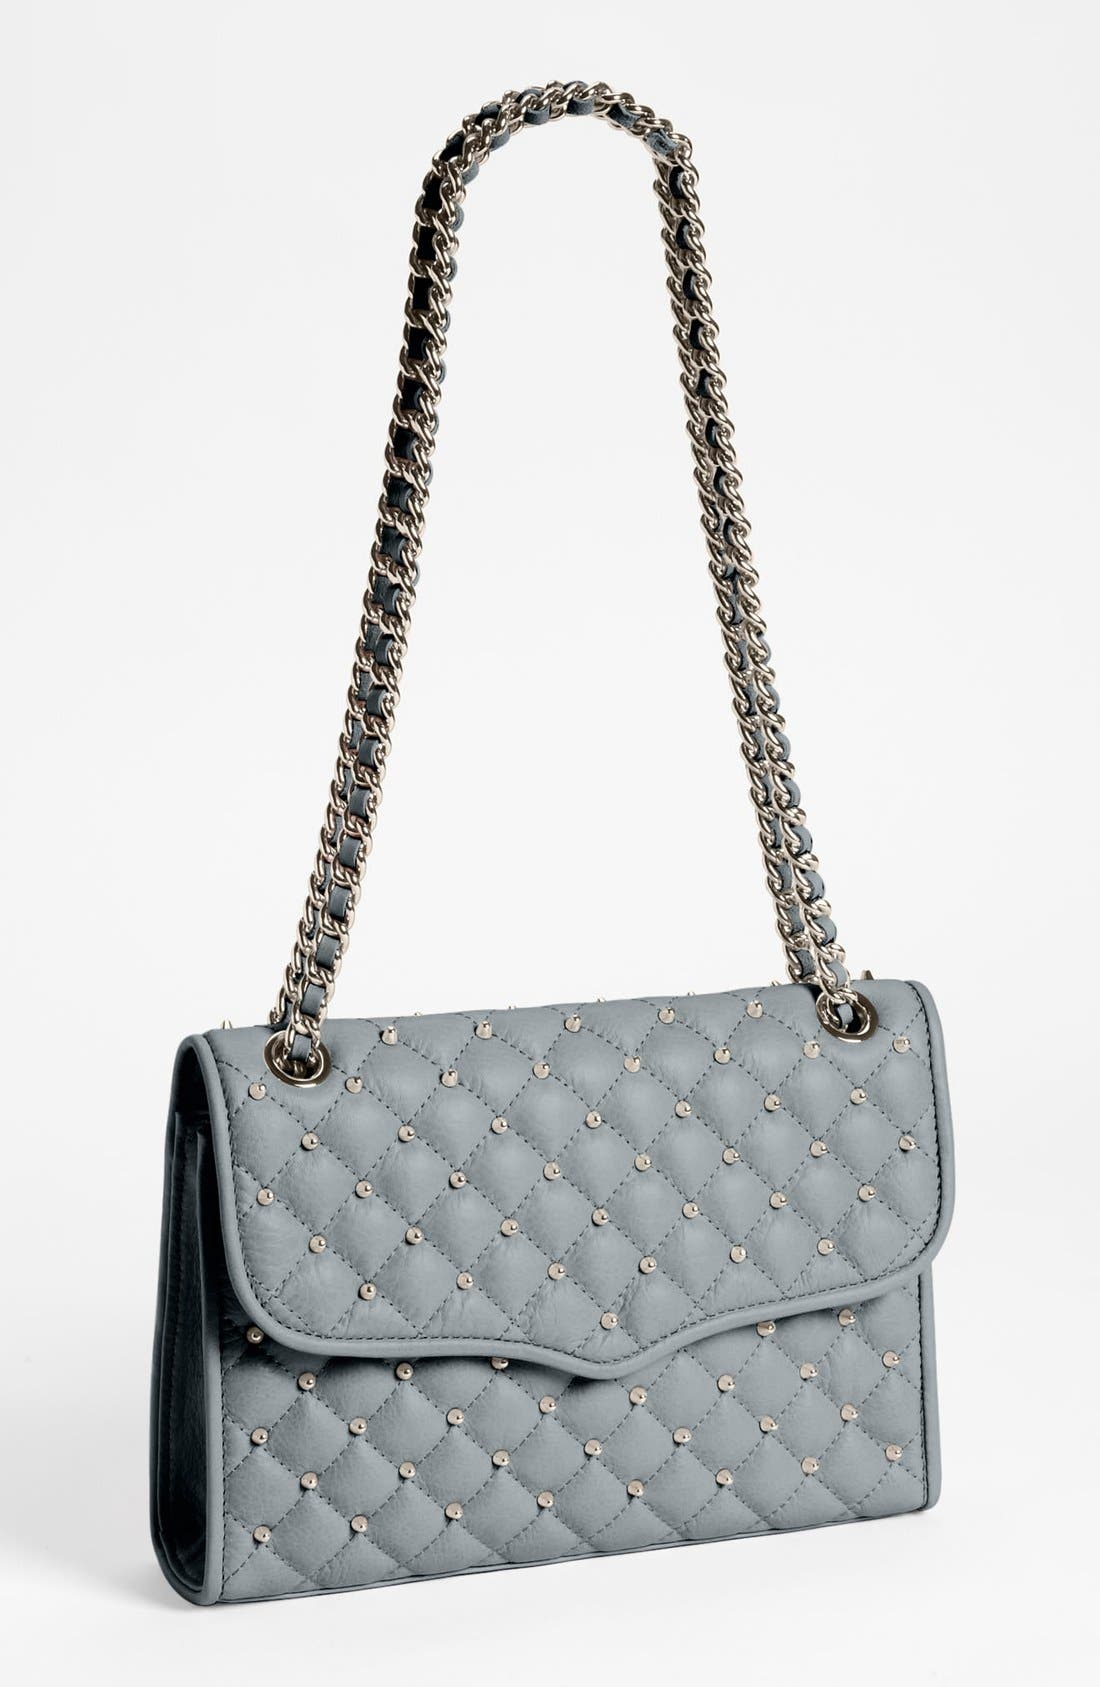 Alternate Image 1 Selected - Rebecca Minkoff 'Affair' Leather Shoulder Bag